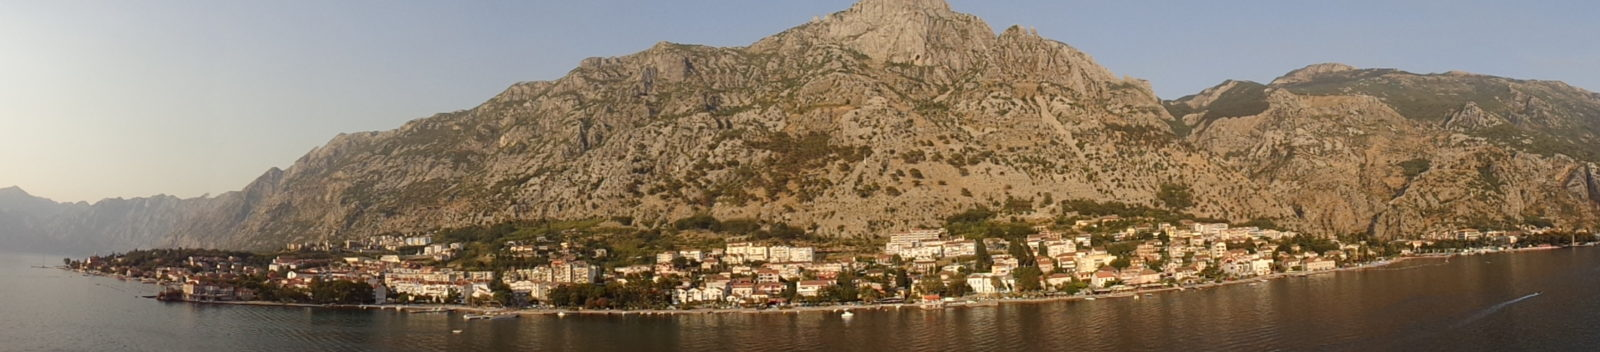 Wedding Destination: Kotor- Montenegro